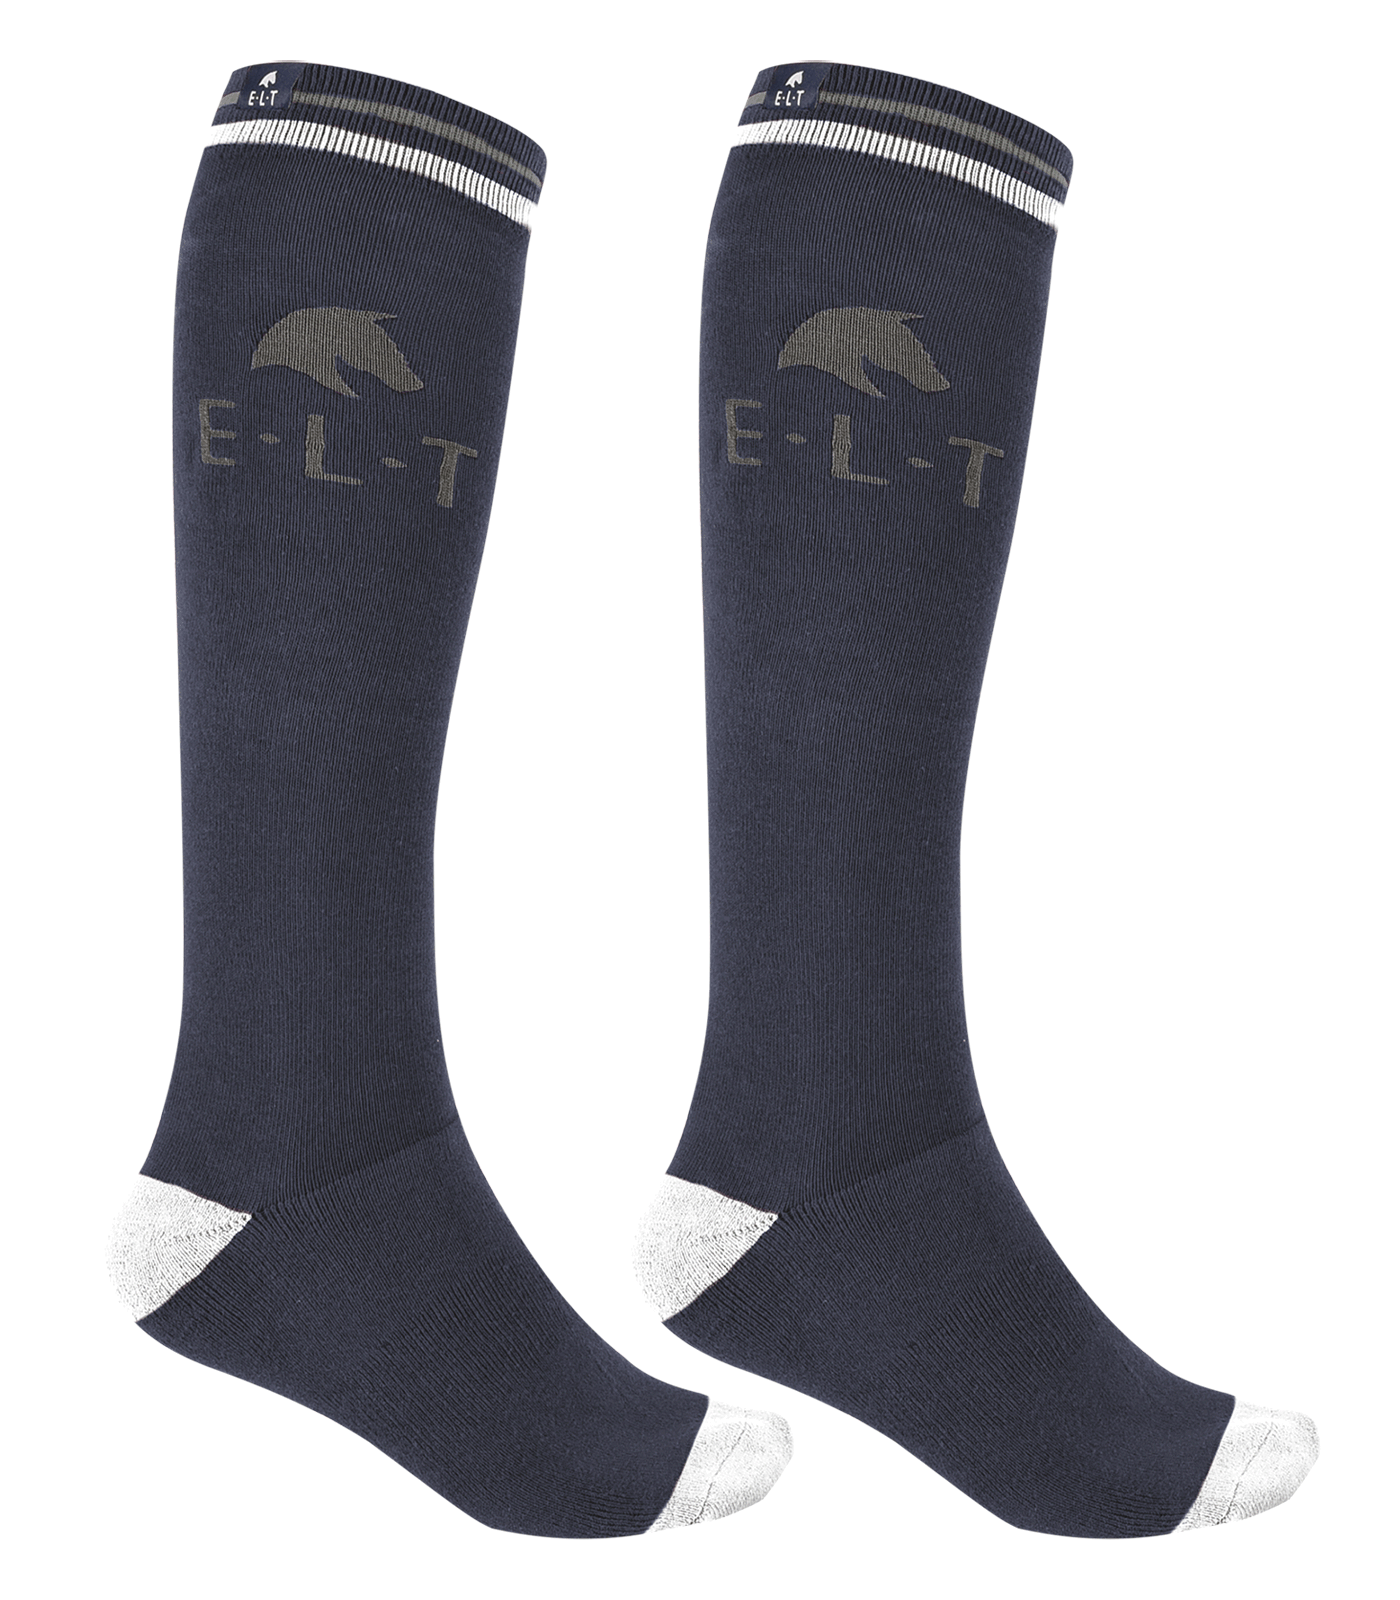 Reitersocken Horse